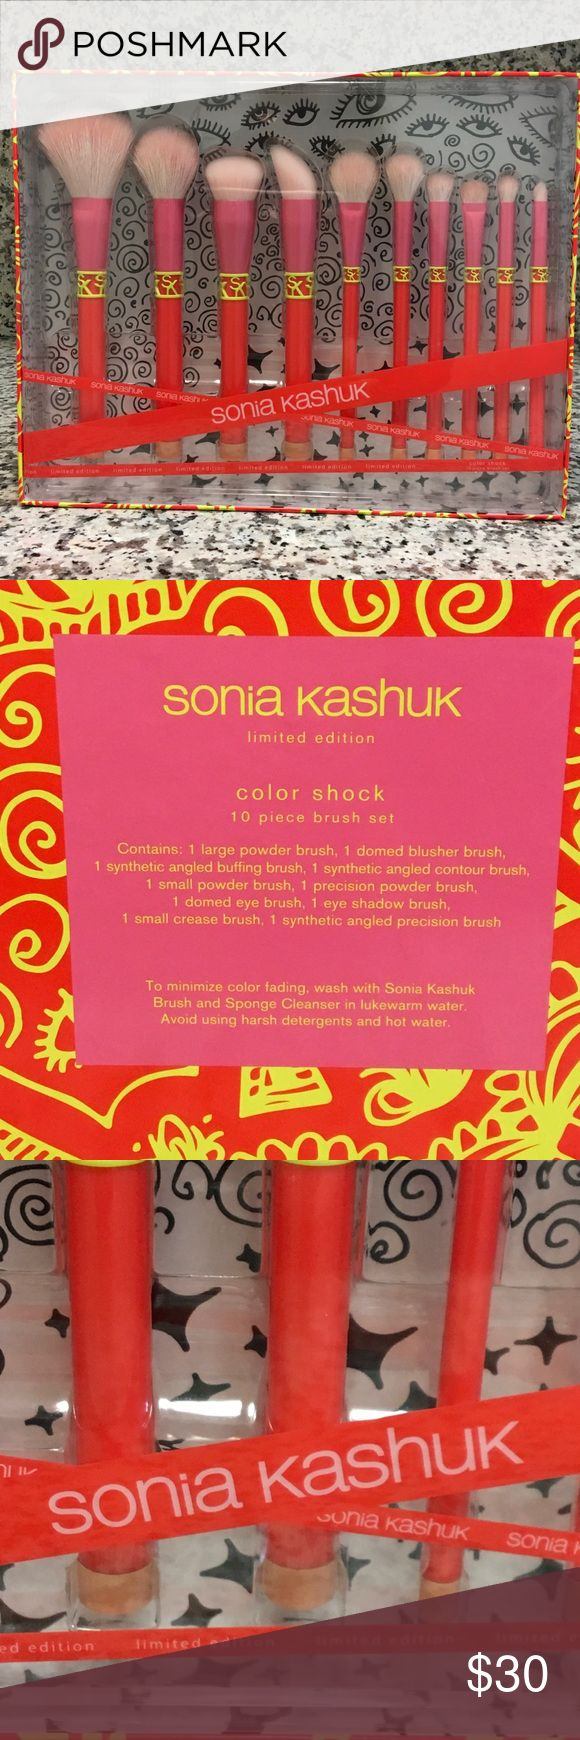 SONIA KASHUK limited edition Color Shock 10 pc set Sonia Kashuk Limited Edition high quality 10 piece brush set. Contains one large powder brush, one domed blusher brush, one synthetic angled buffing brush, one synthetic angled contour brush, one small powder brush, one Percision powder brush, one domed eye brush, one eye shadow brush, one small crease brush, one synthetic angle precision brush. Sonia Kashuk Makeup Brushes & Tools